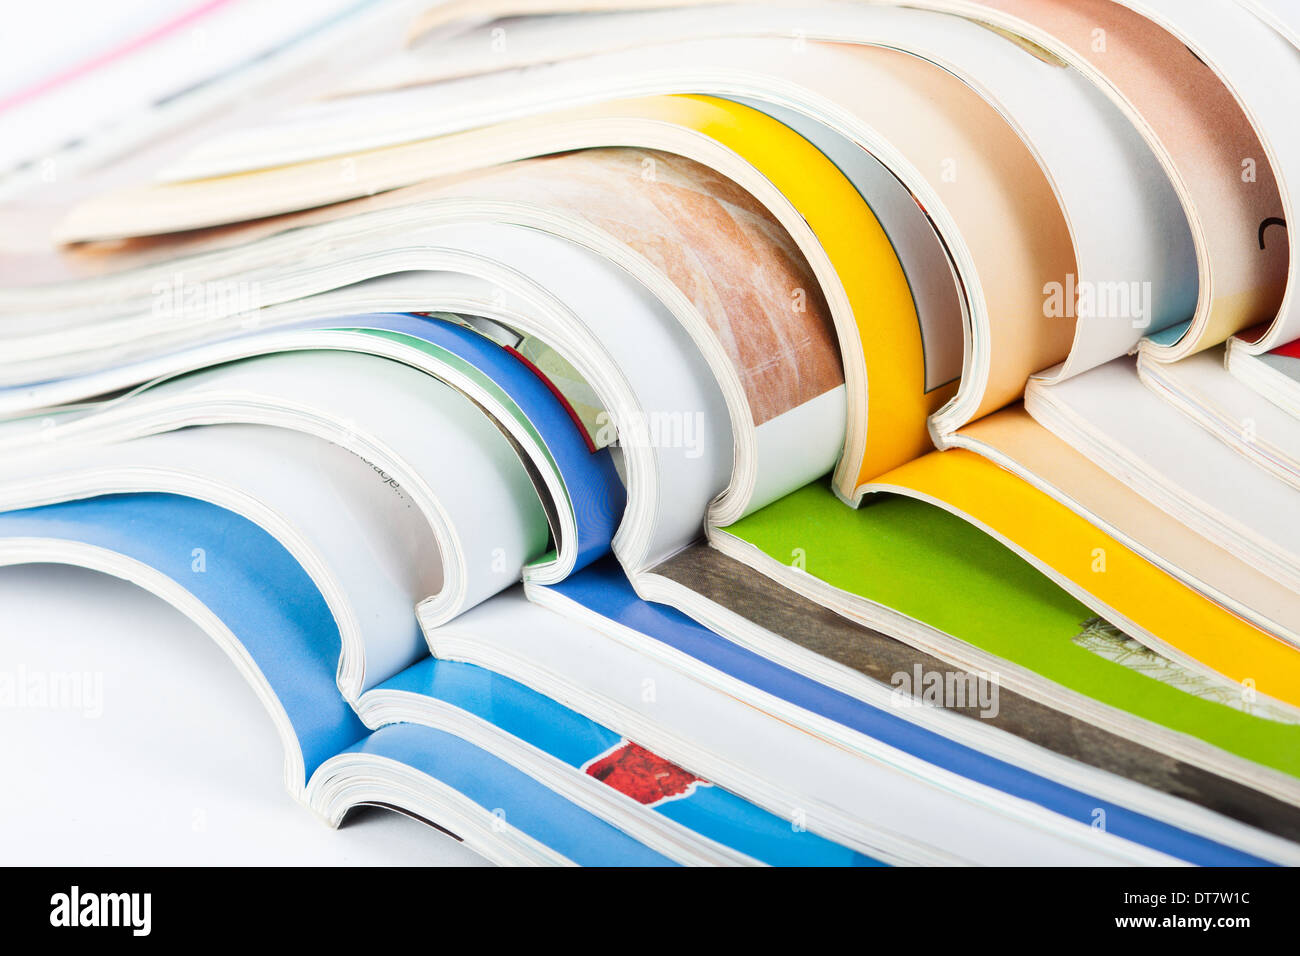 Pile of colorful paper magazines - Stock Image